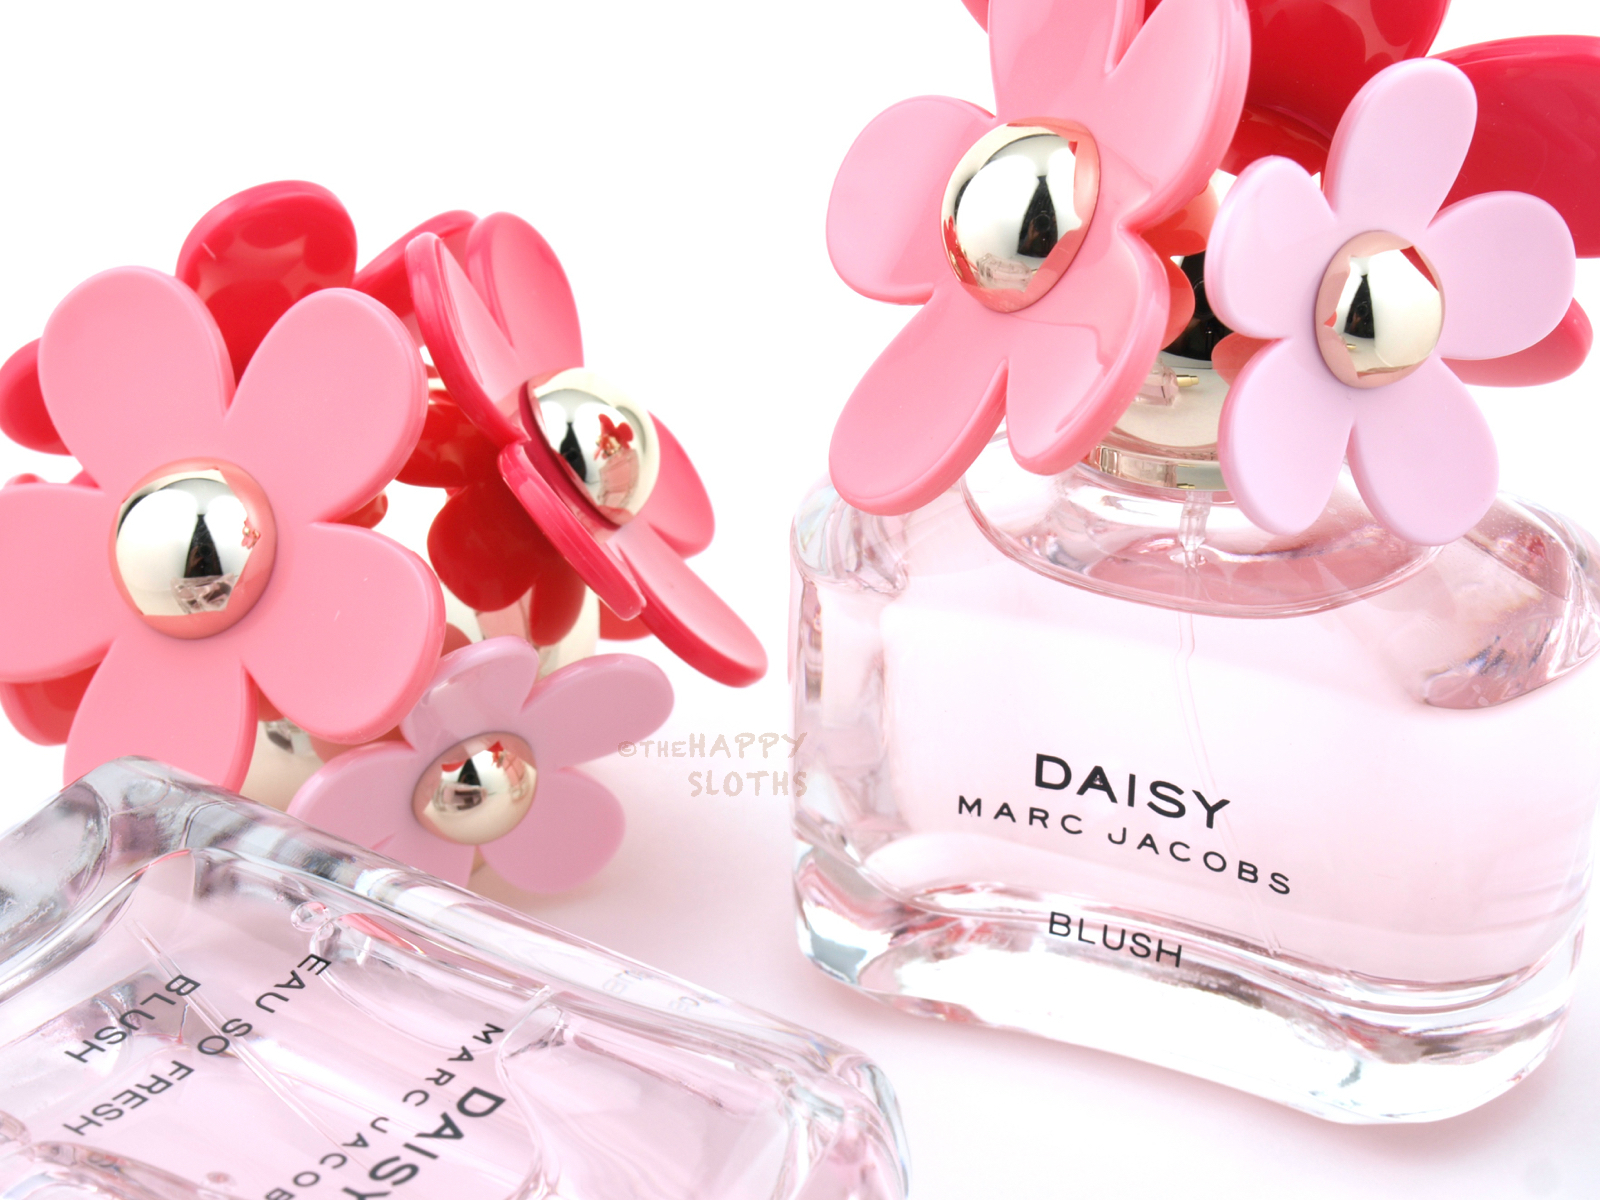 Marc jacobs daisy blush daisy eau so fresh blush review the its not officially spring until the release of marc jacobs yearly limited edition daisy fragrances and this year we have the daisy blush 90 cad daisy izmirmasajfo Image collections